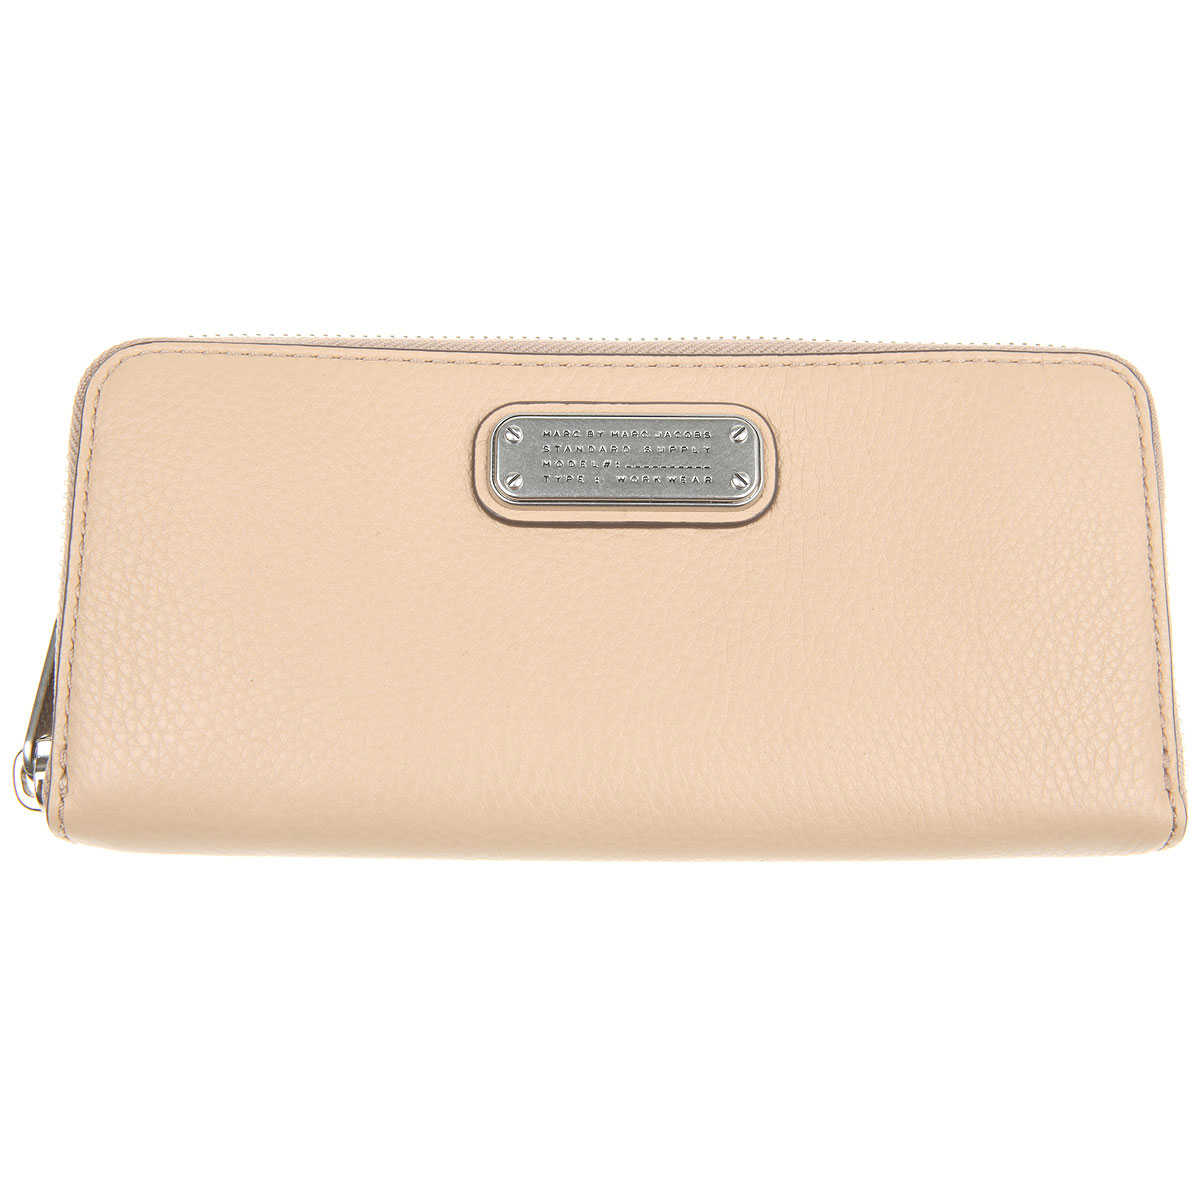 Marc Jacobs Wallet for Women Pink SE - GOOFASH